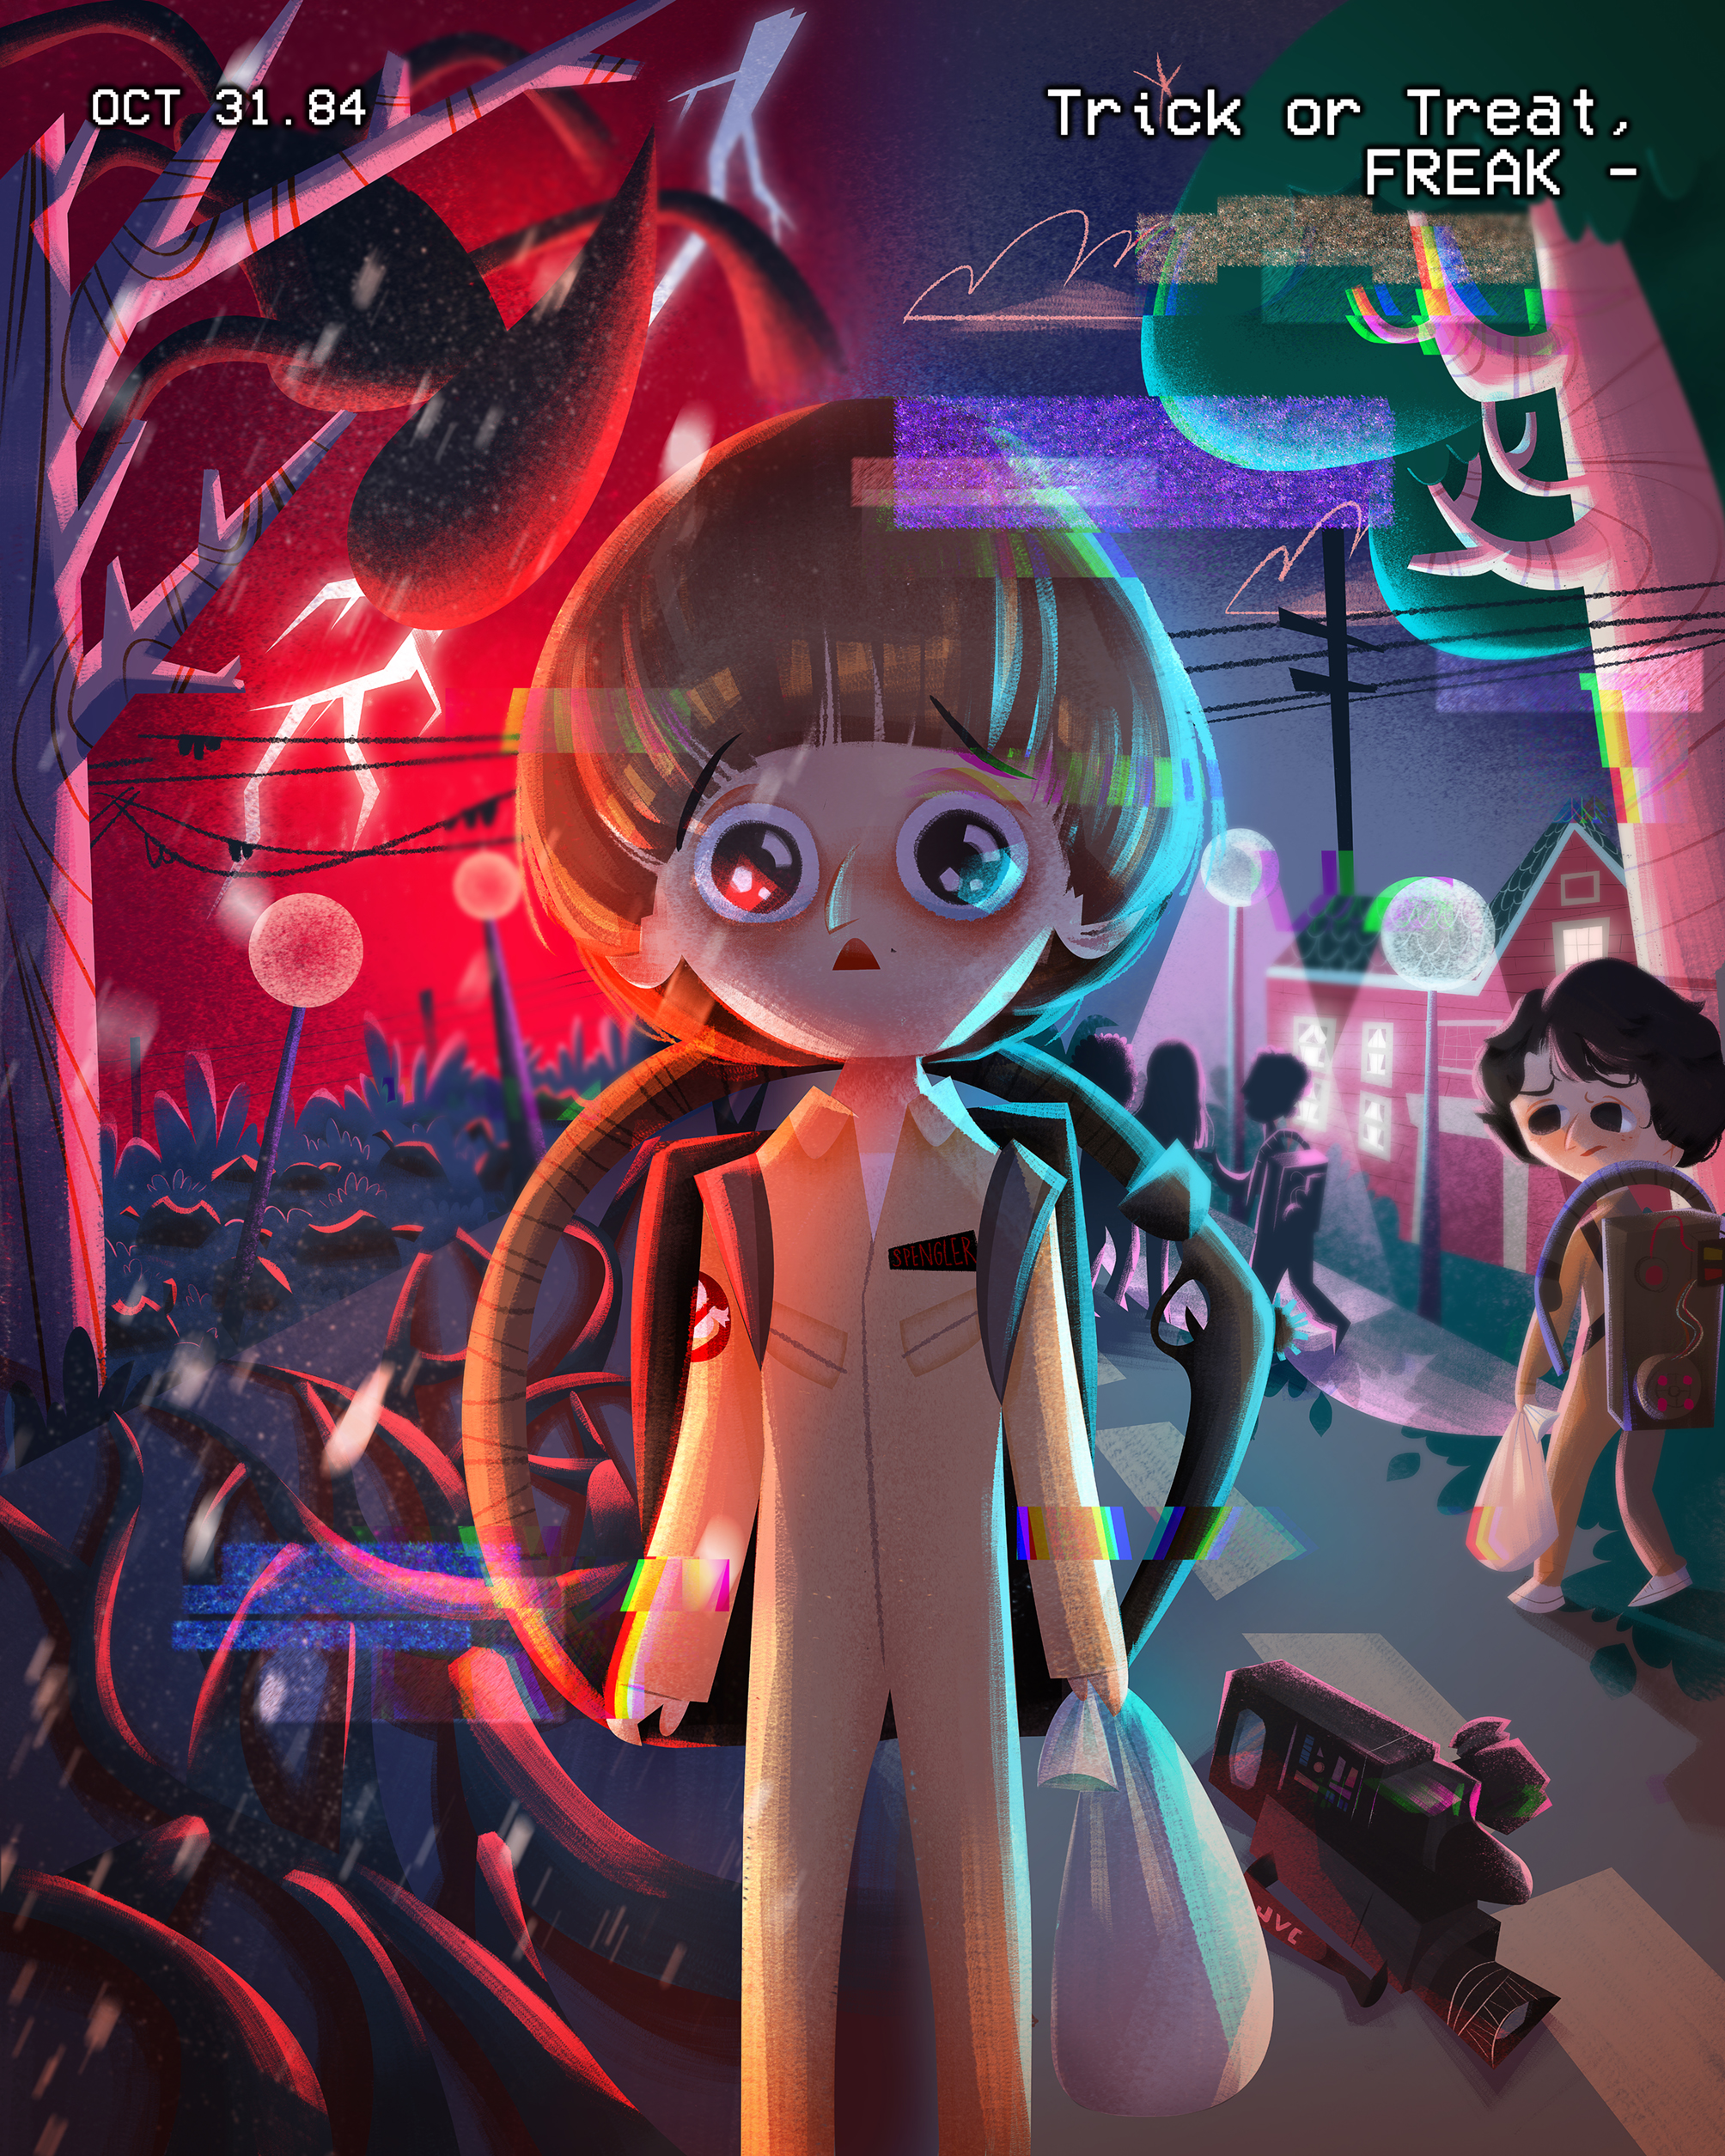 A Malaysian Created This Stranger Things Fan Art That Was